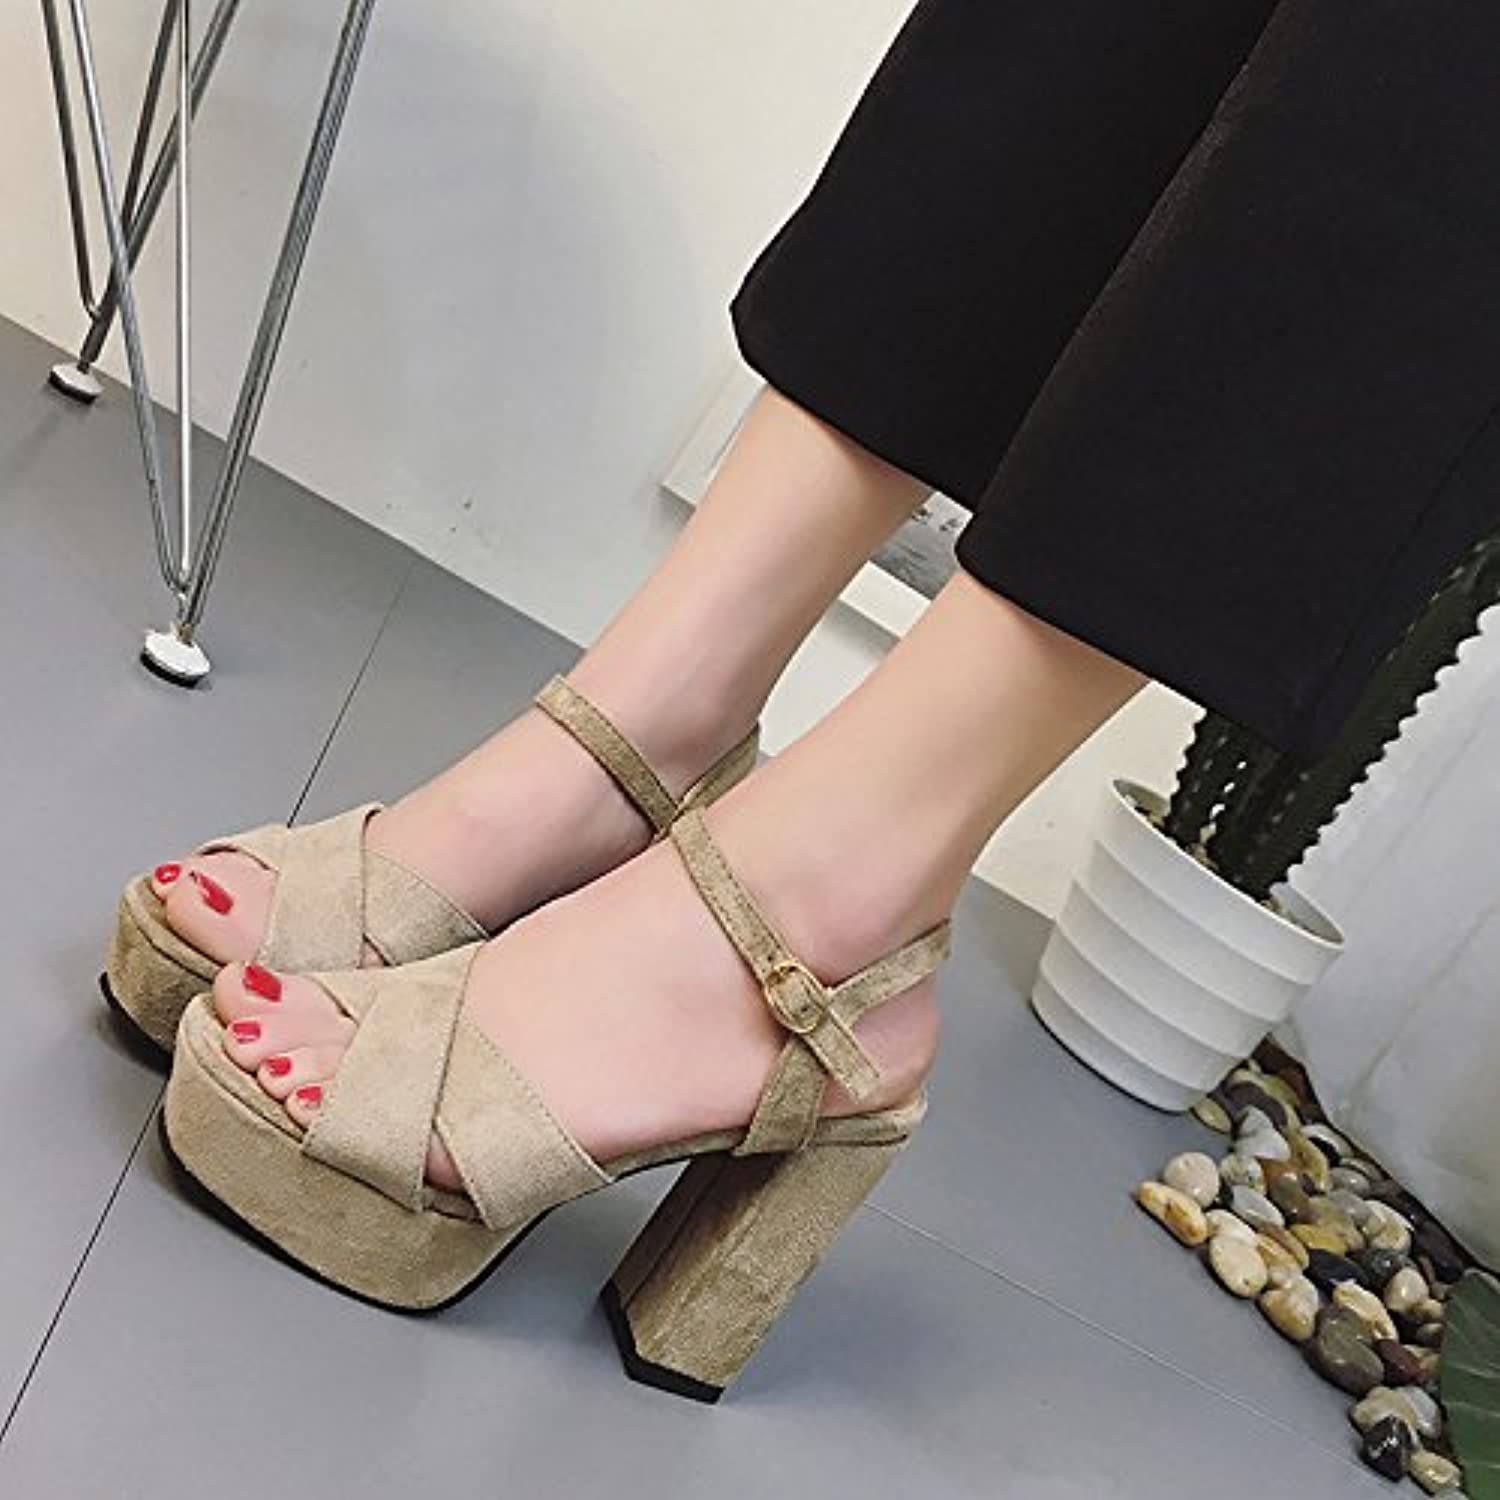 DNJKSA Waterproof Platform High Heel Sandals Summer 2019 New European and American Fishmouth shoes Sexy Slim Women's shoes with Thick Heels